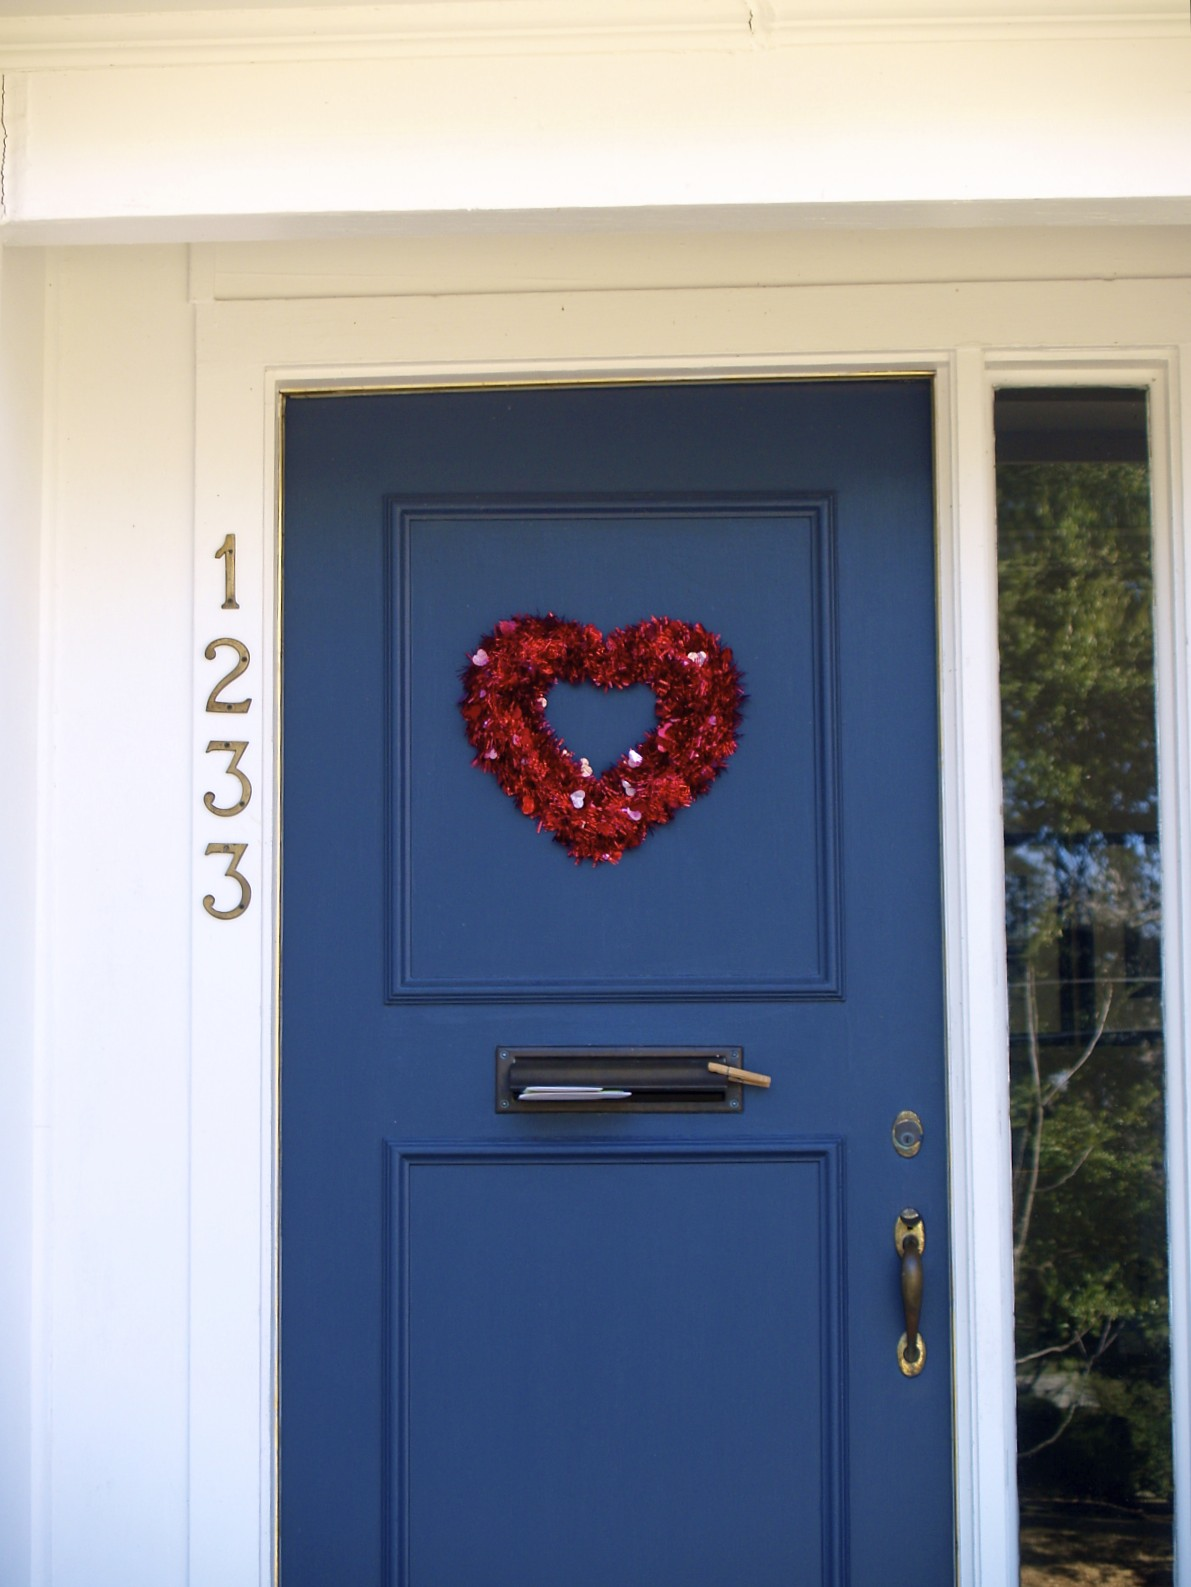 Valentine wreath on blue door